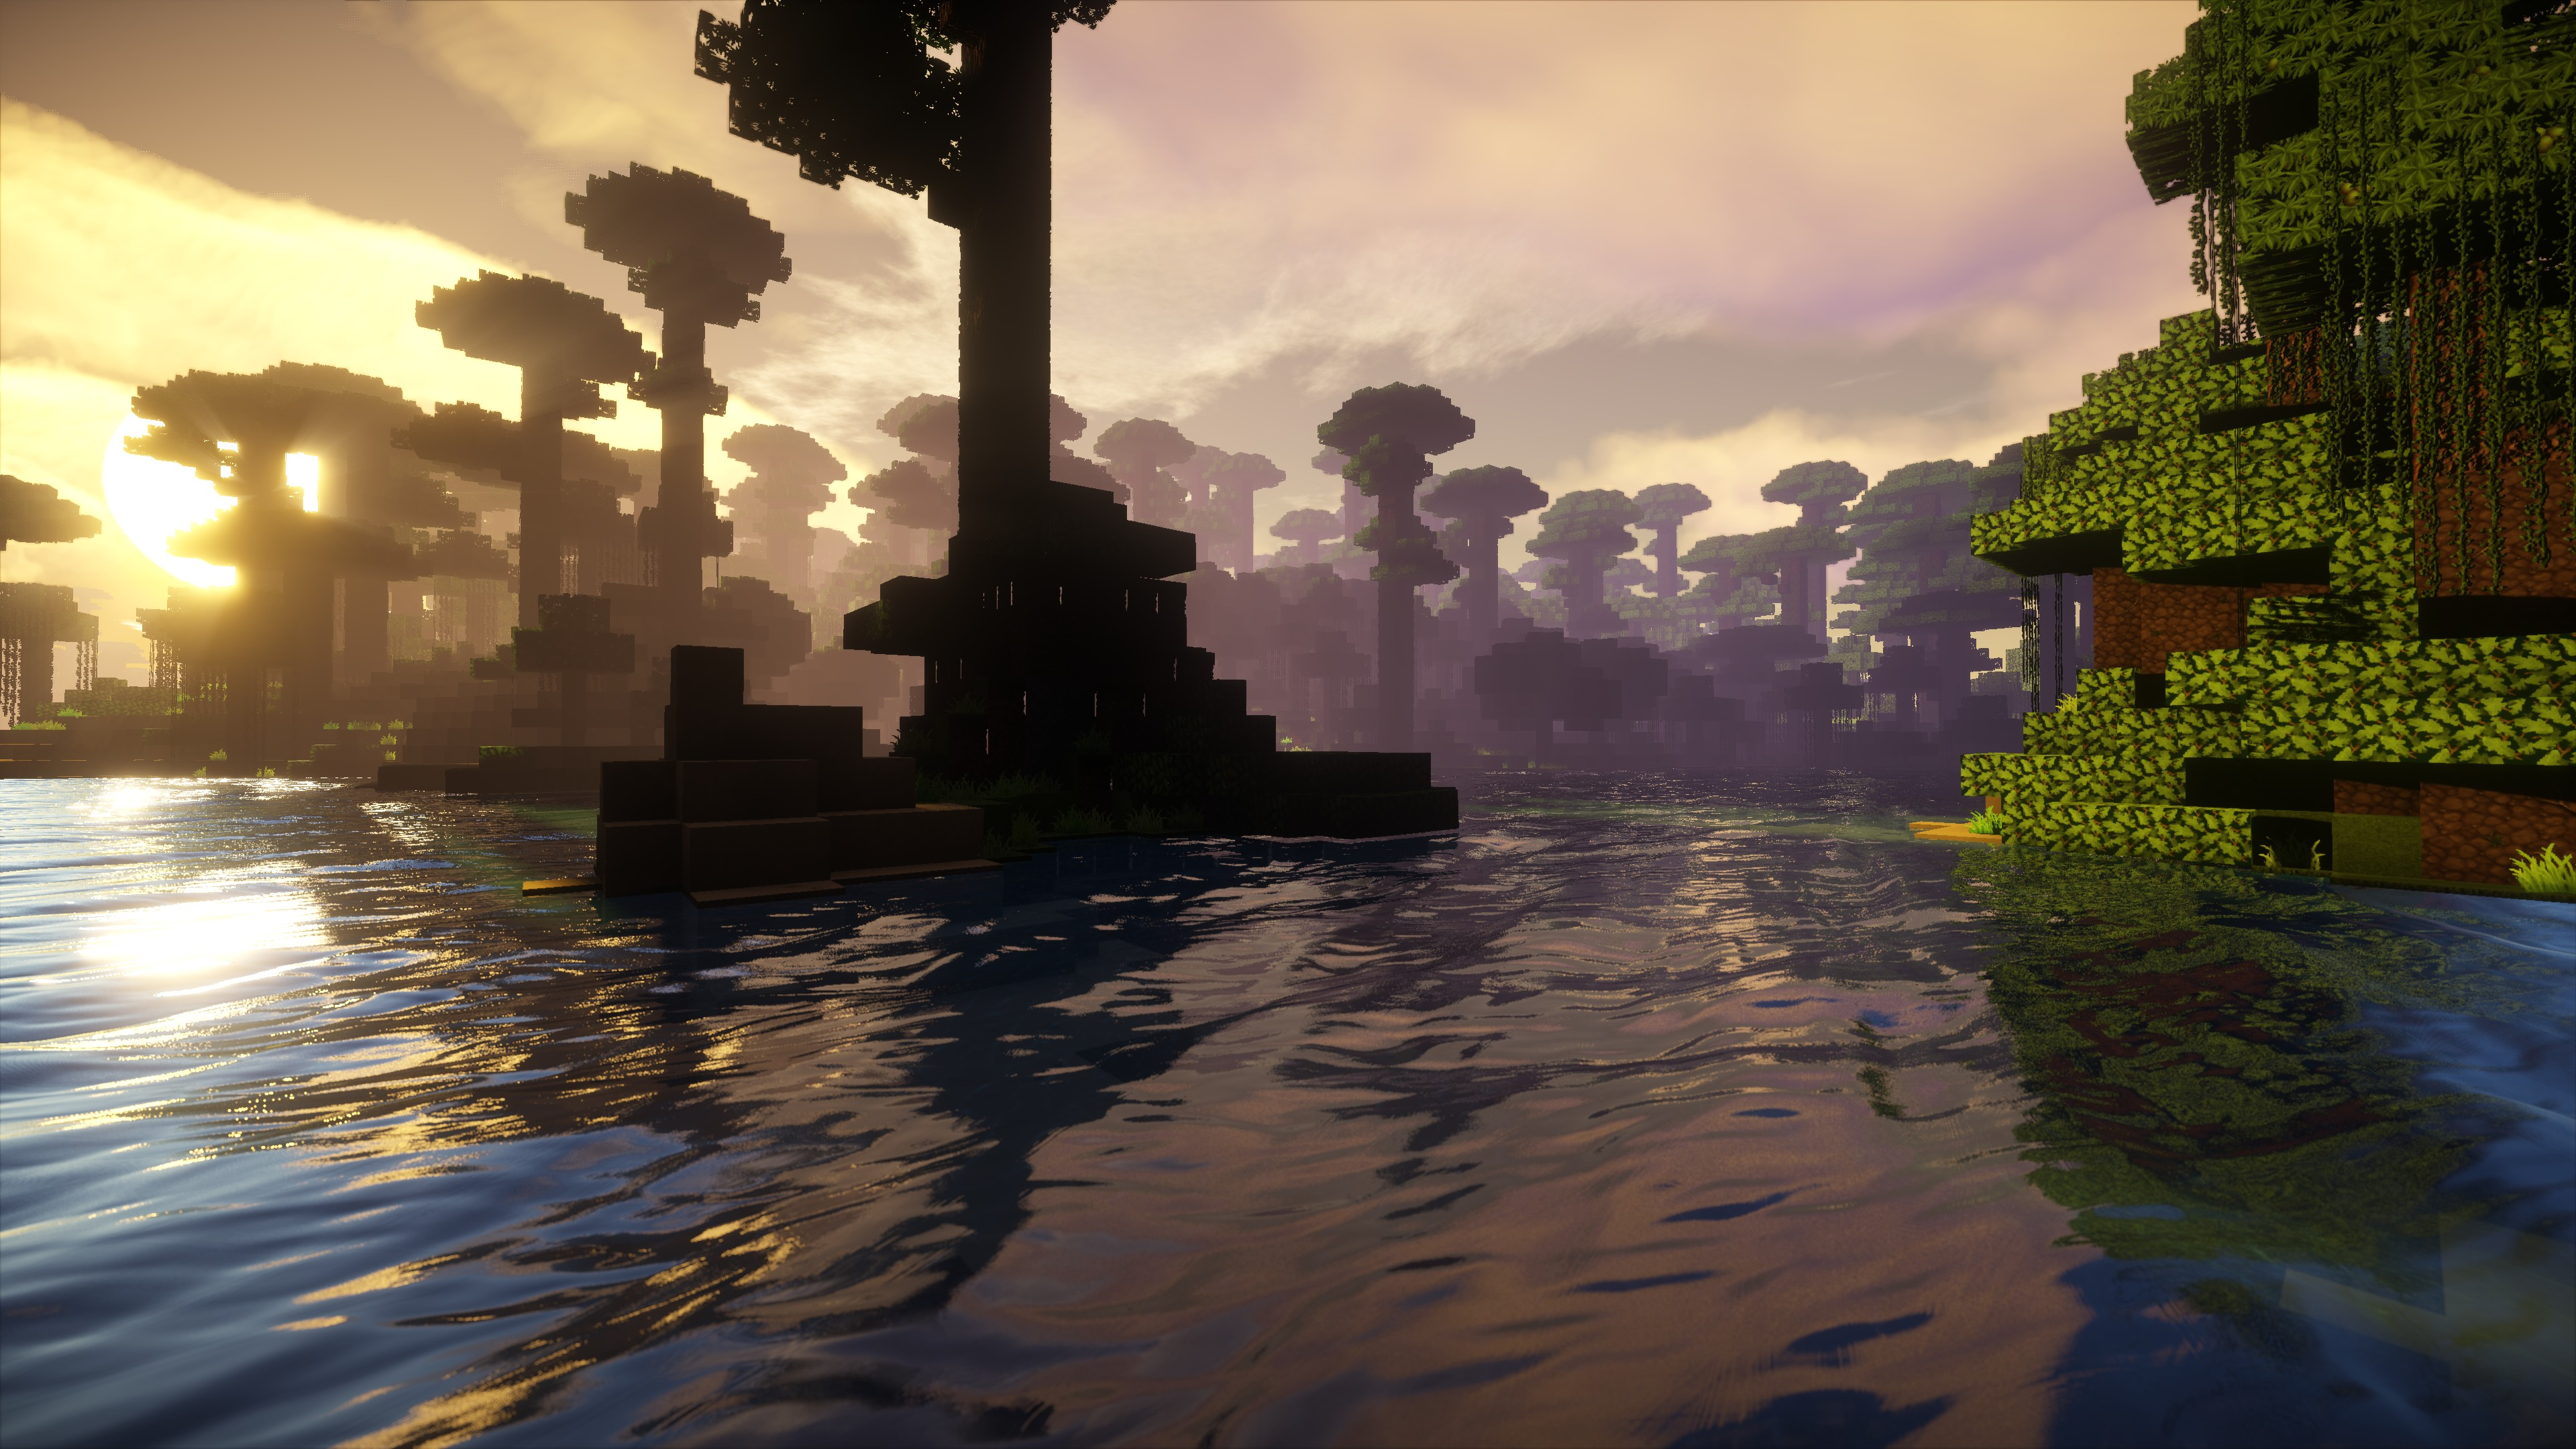 Minecraft HD wallpaper \u00b7\u2460 Download free awesome HD wallpapers for desktop and mobile devices in